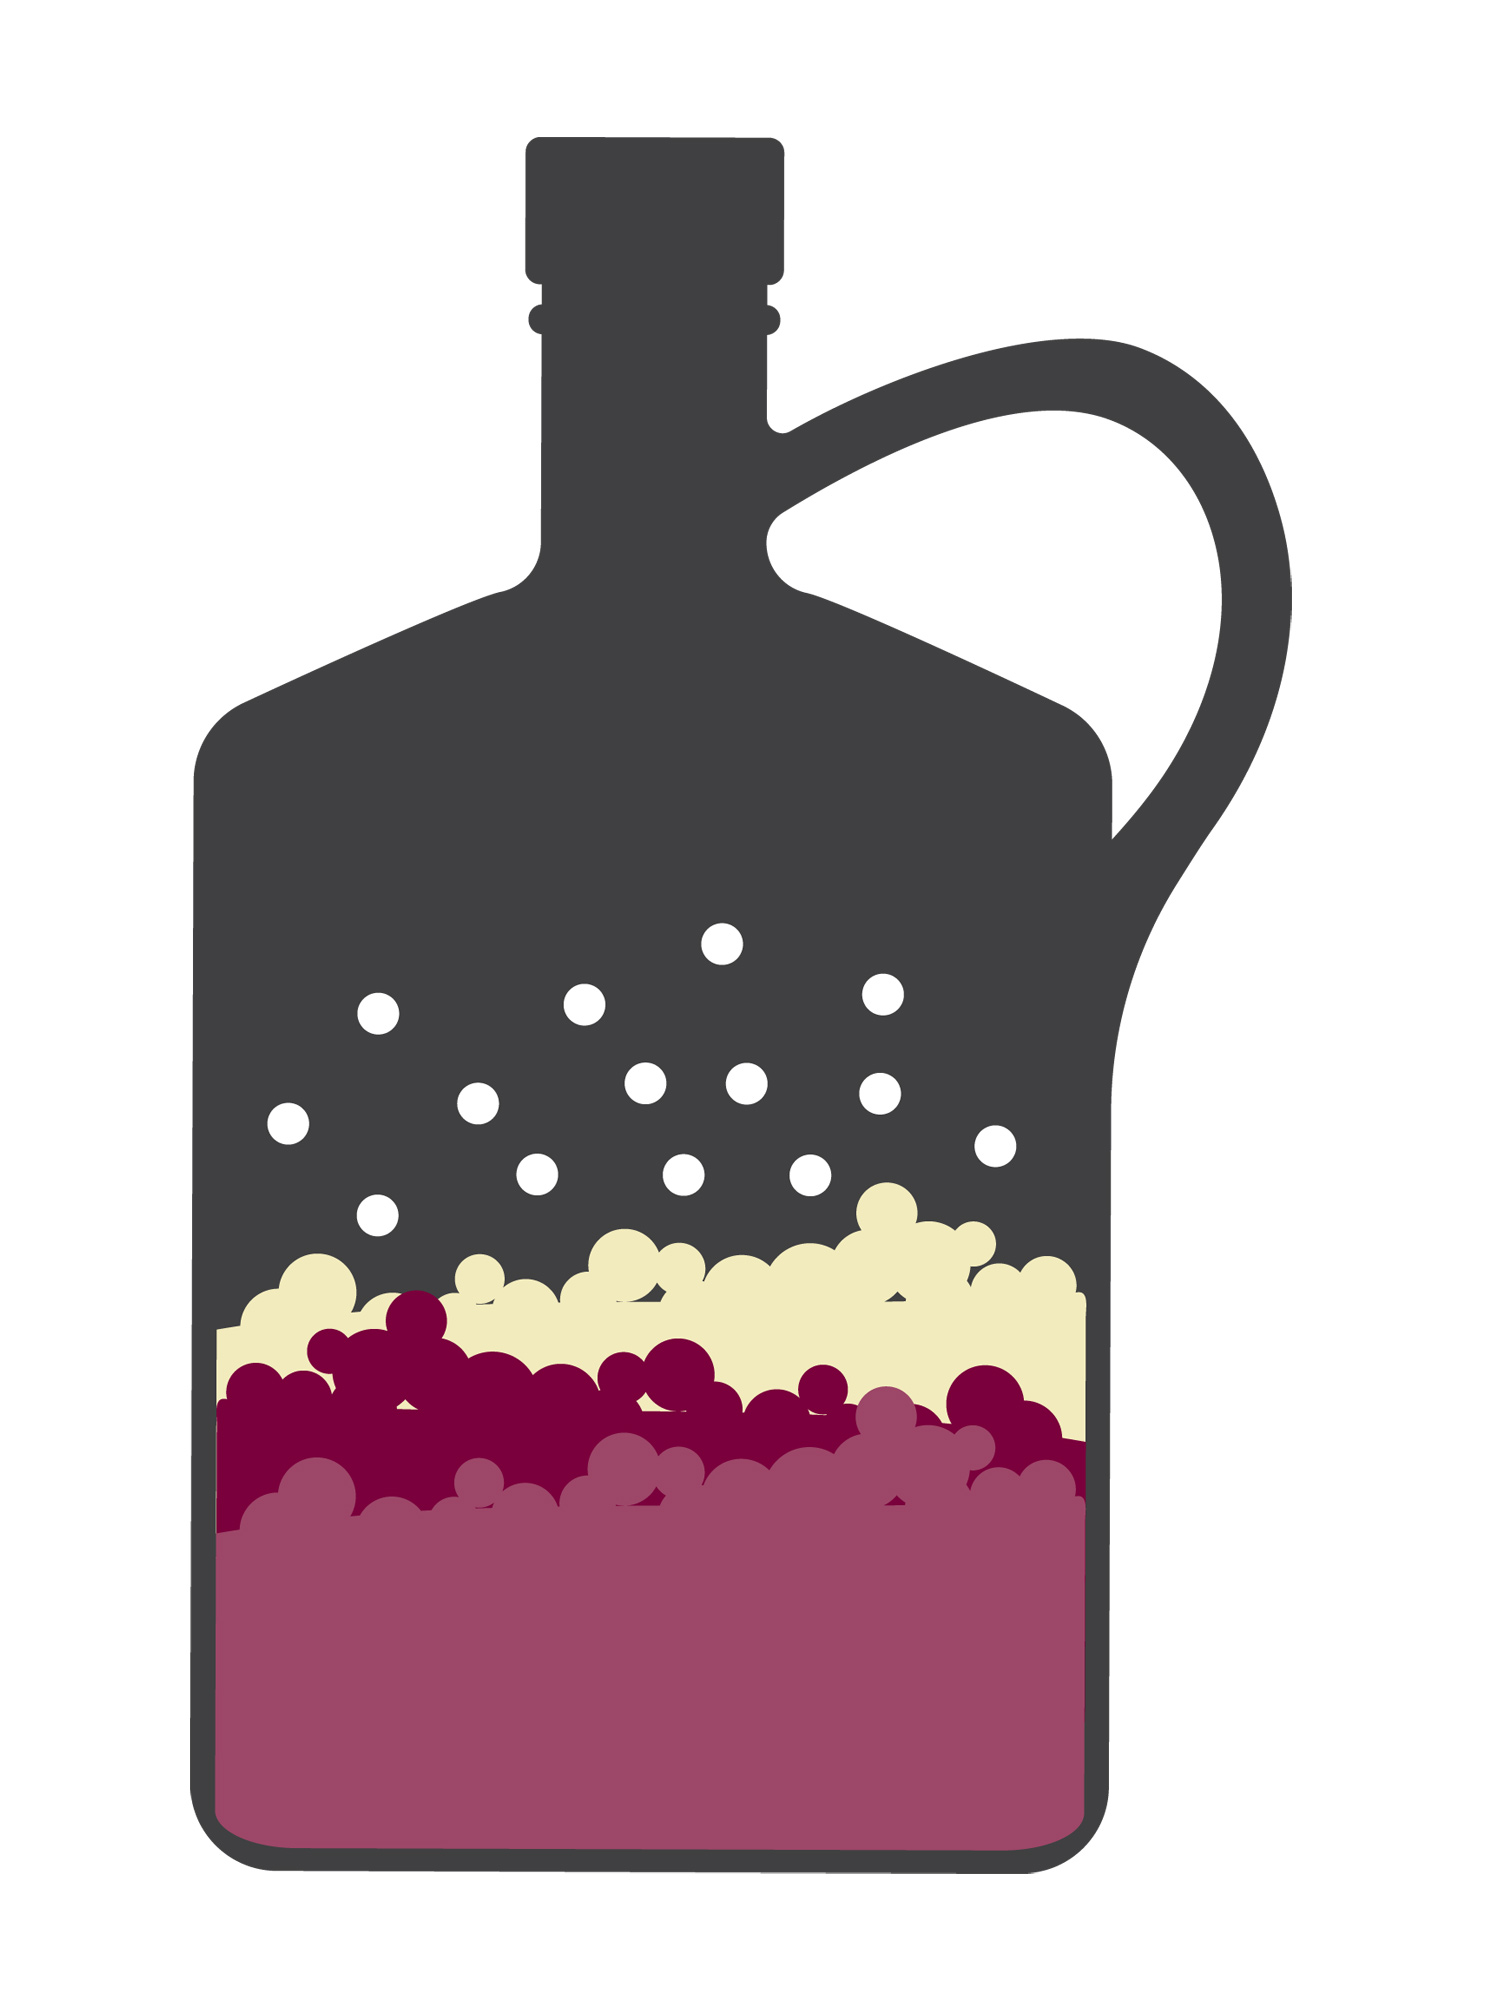 Drawing of Growler filled with a substance